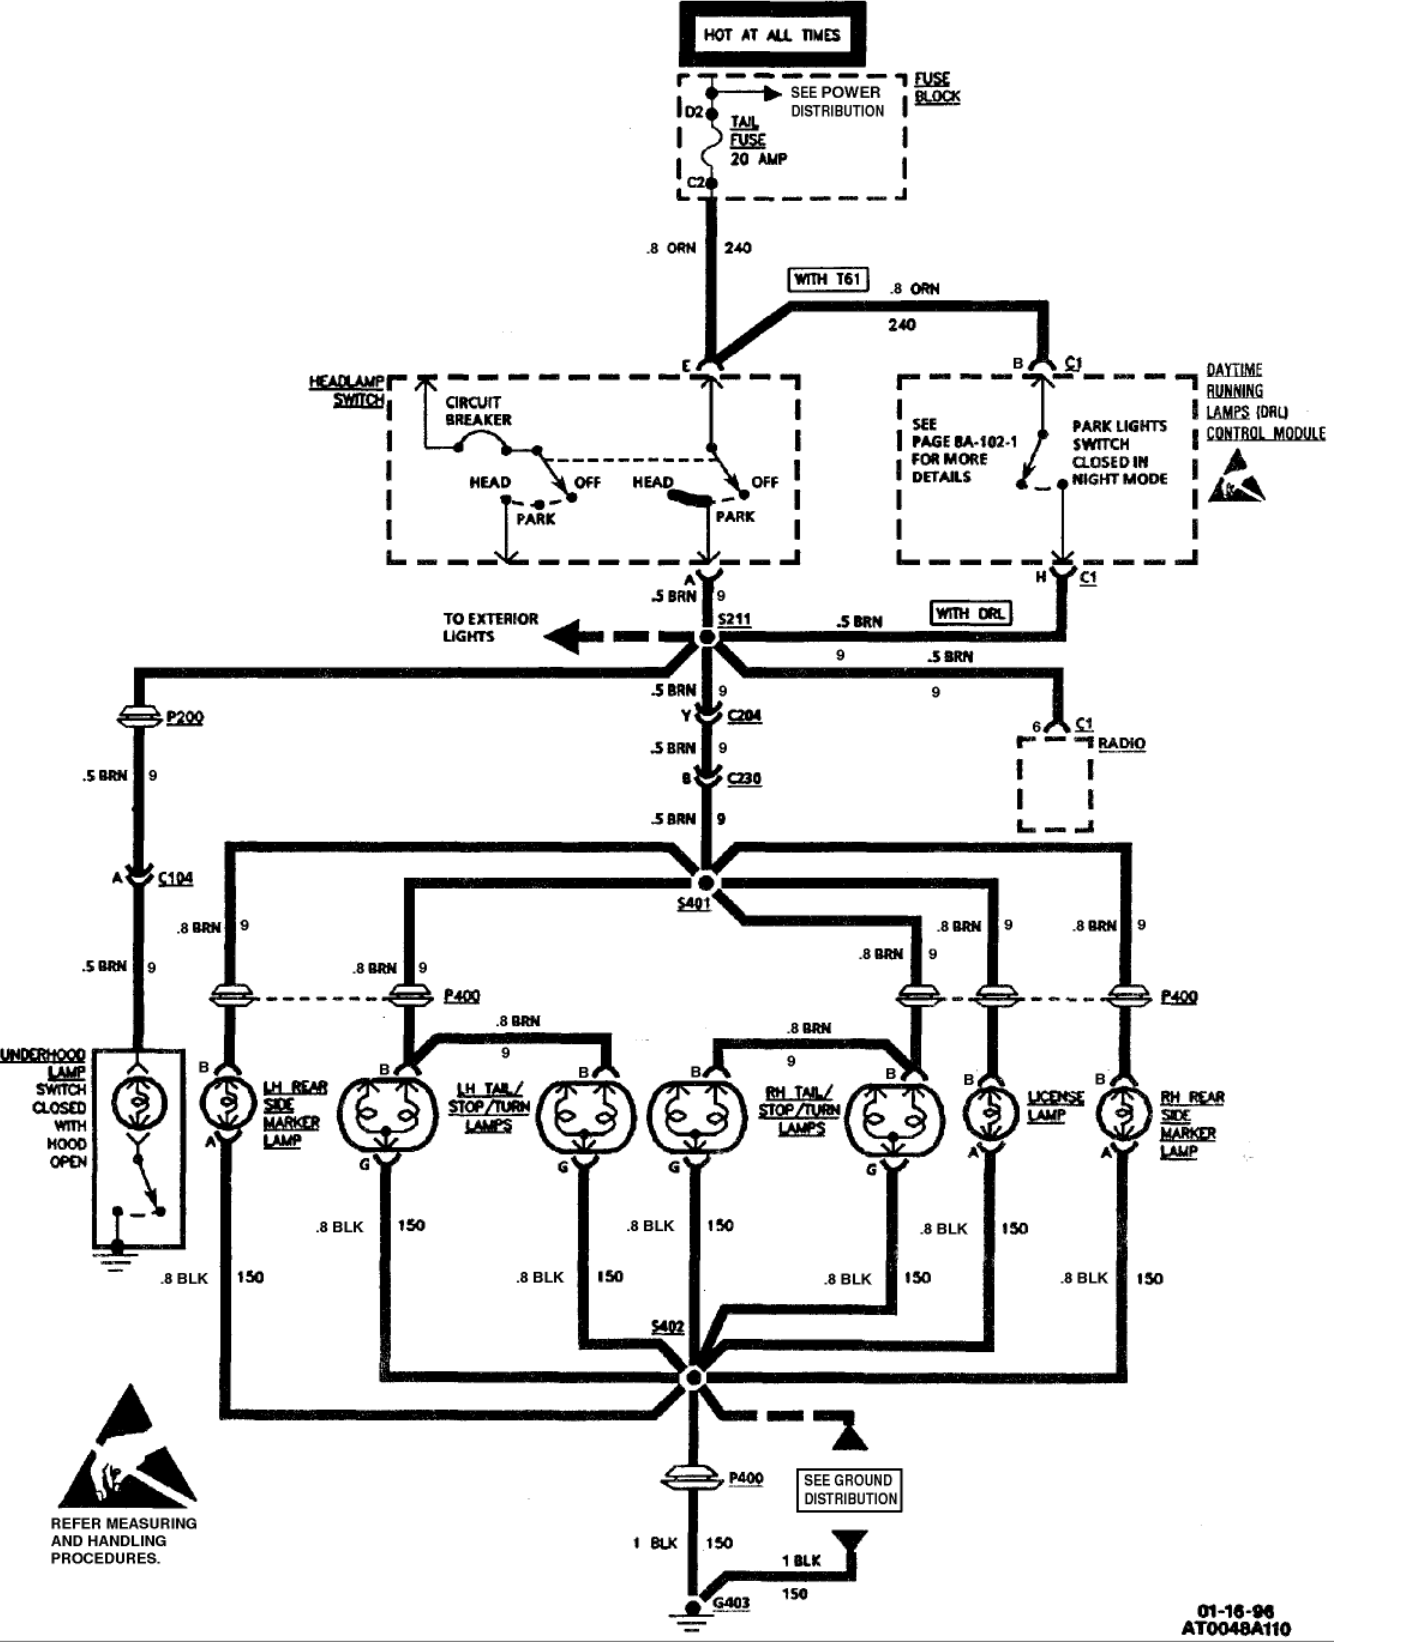 Do You Have A Wiring Schematic For A 1996 Oldsmobile Cutlass Ciera Sl With A 3100 Sfi V6 Engine